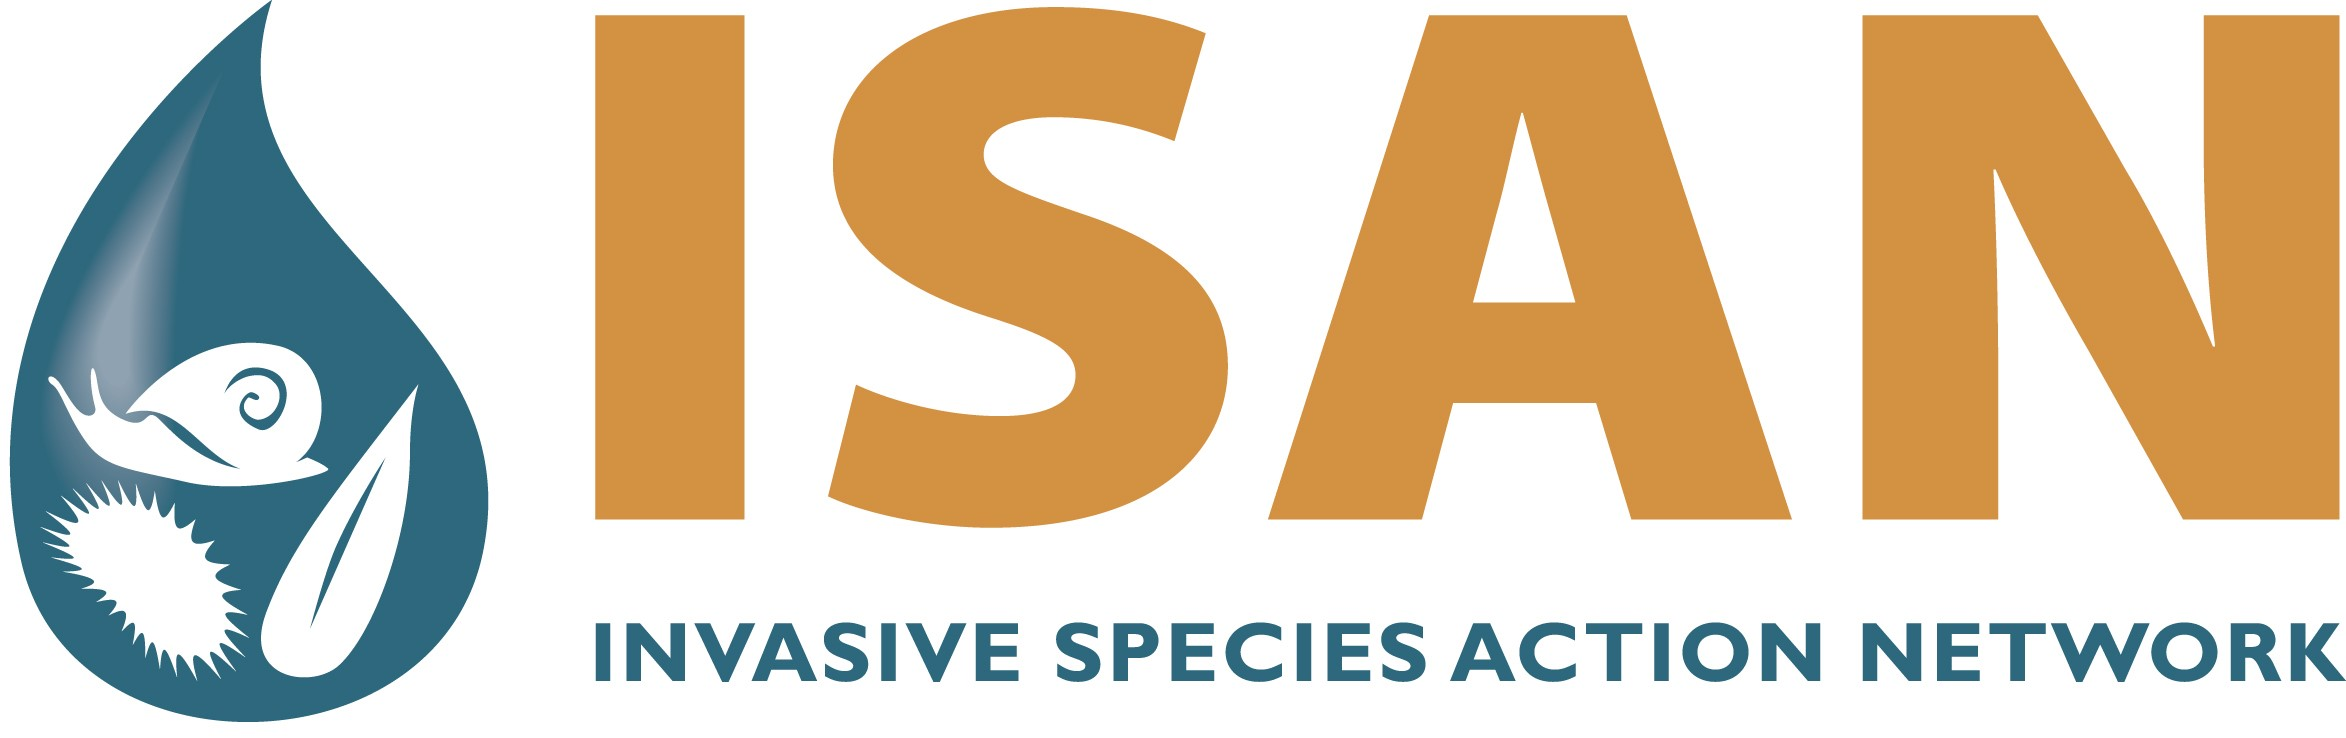 Invasive Species Action Network